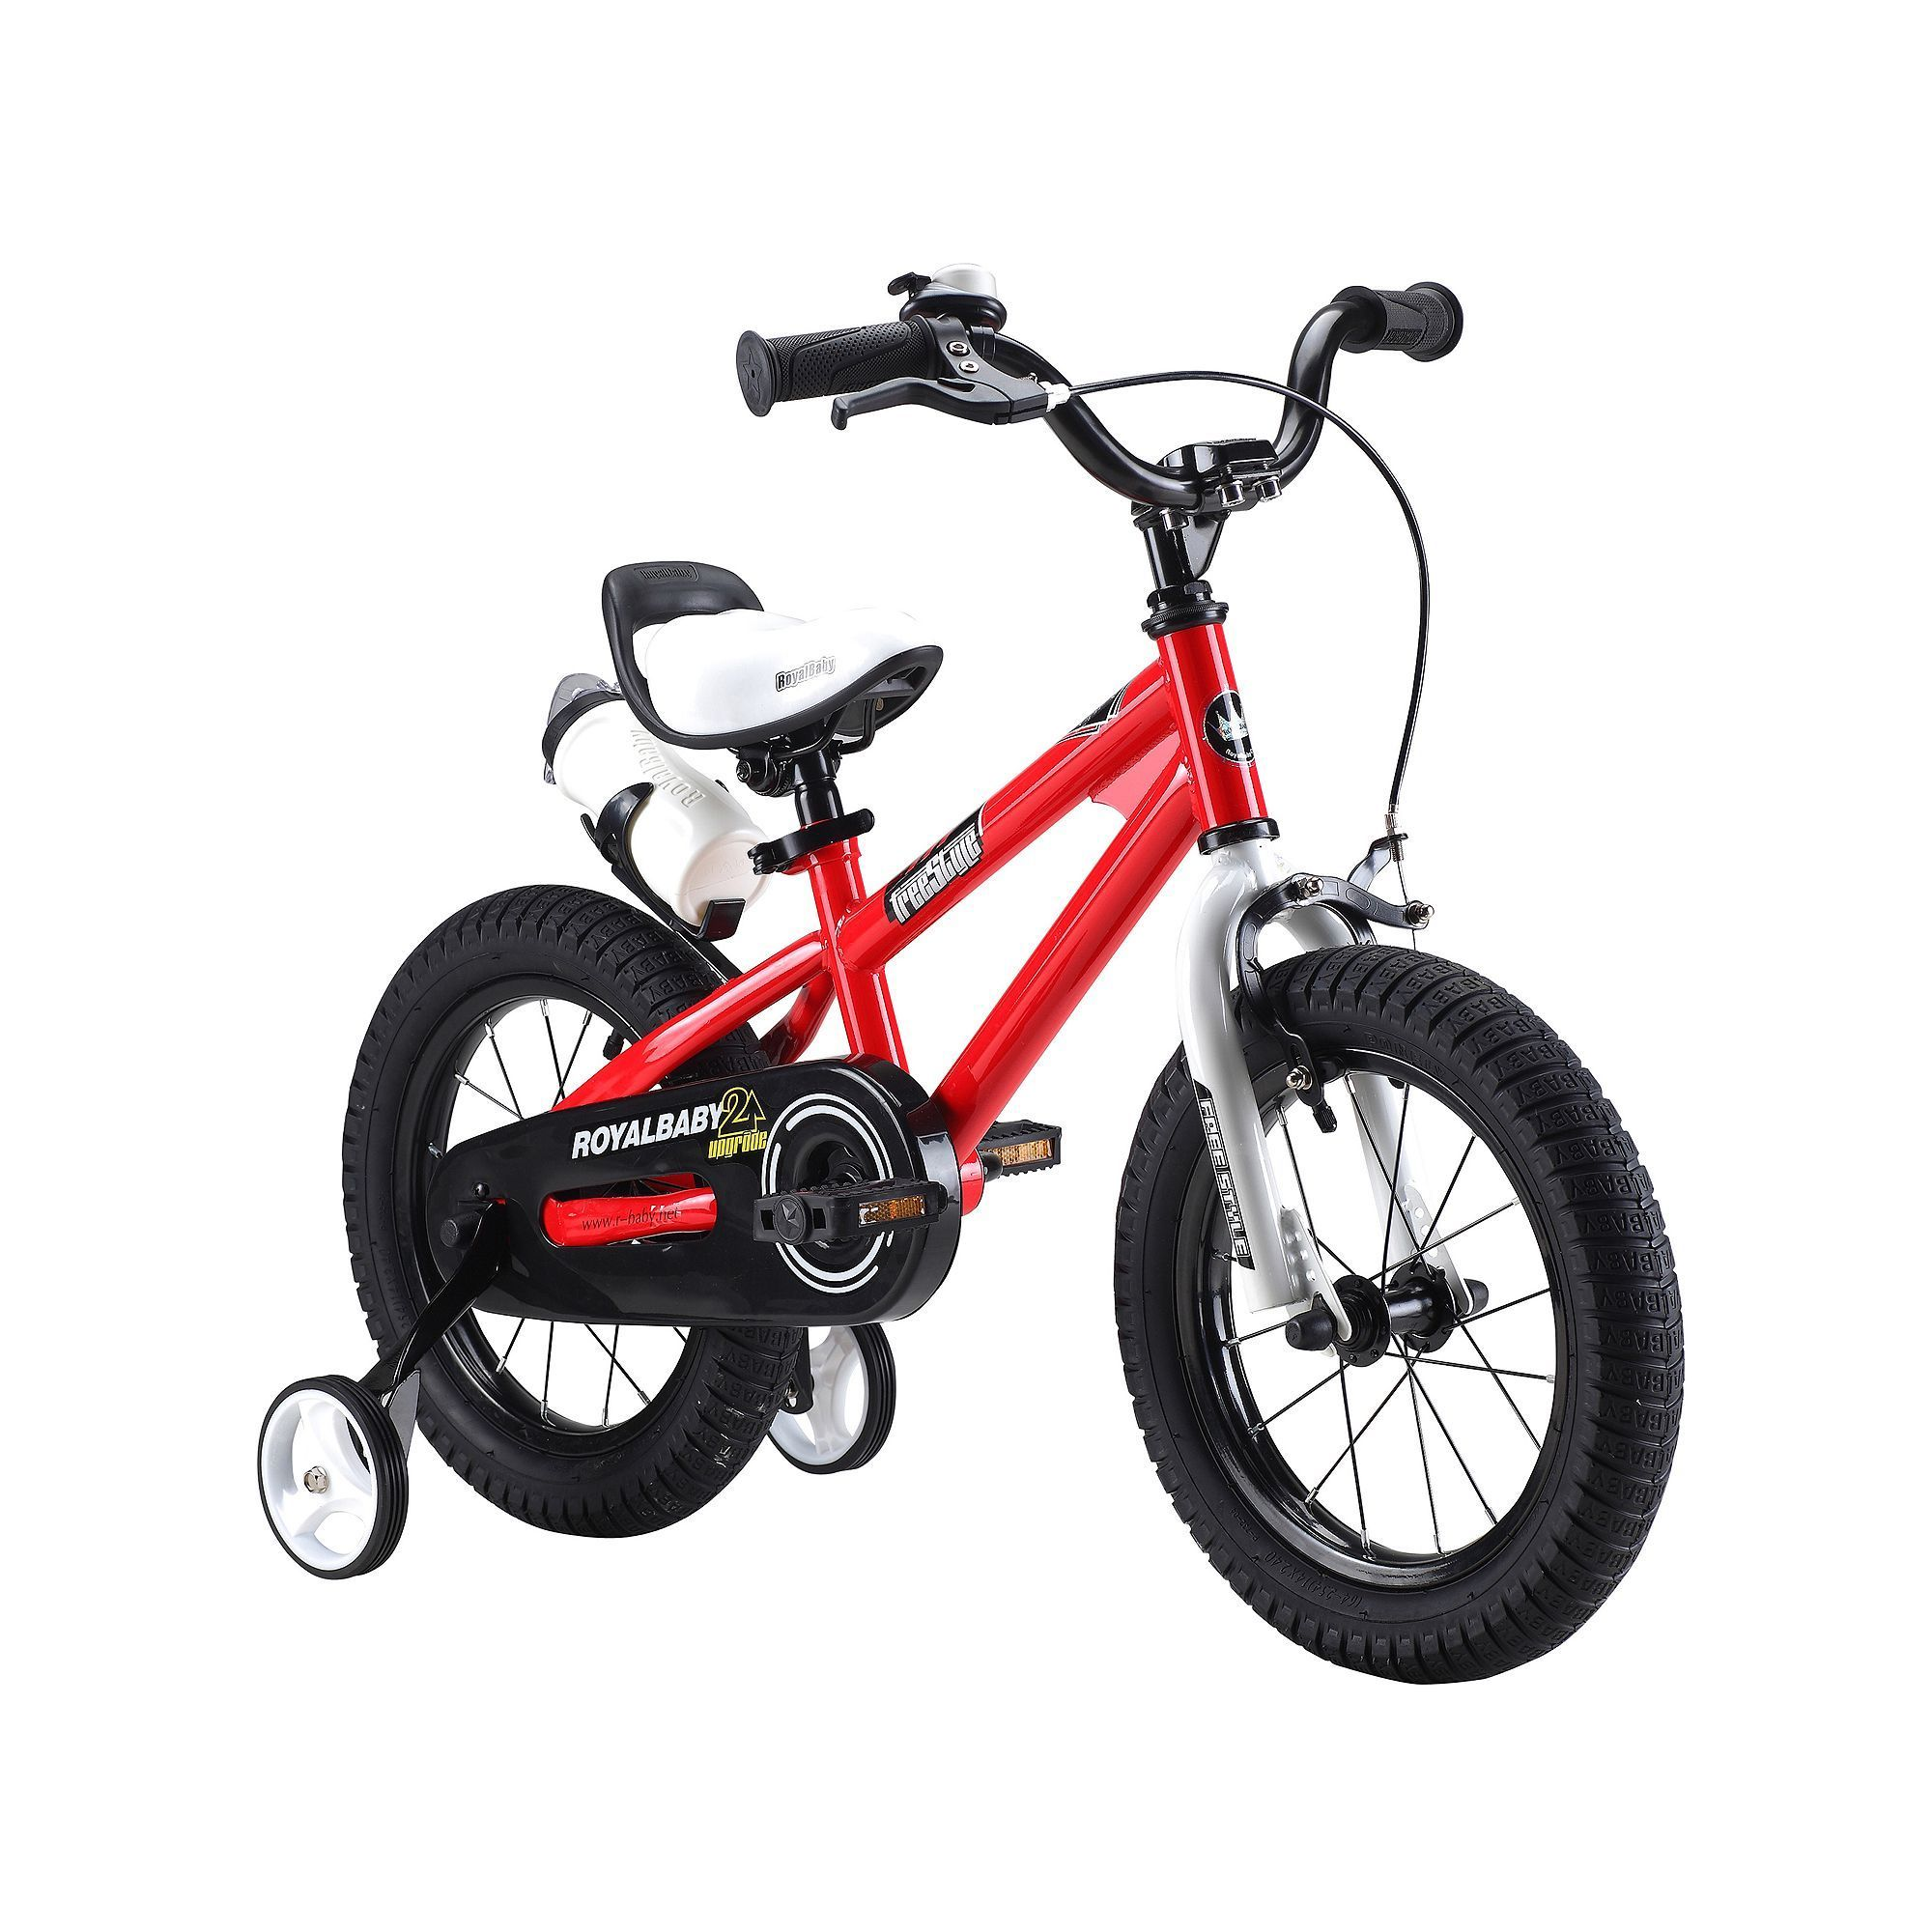 c07be974045 Royalbaby Freestyle 16-in. Bike - Kids | Products | Kids bicycle ...